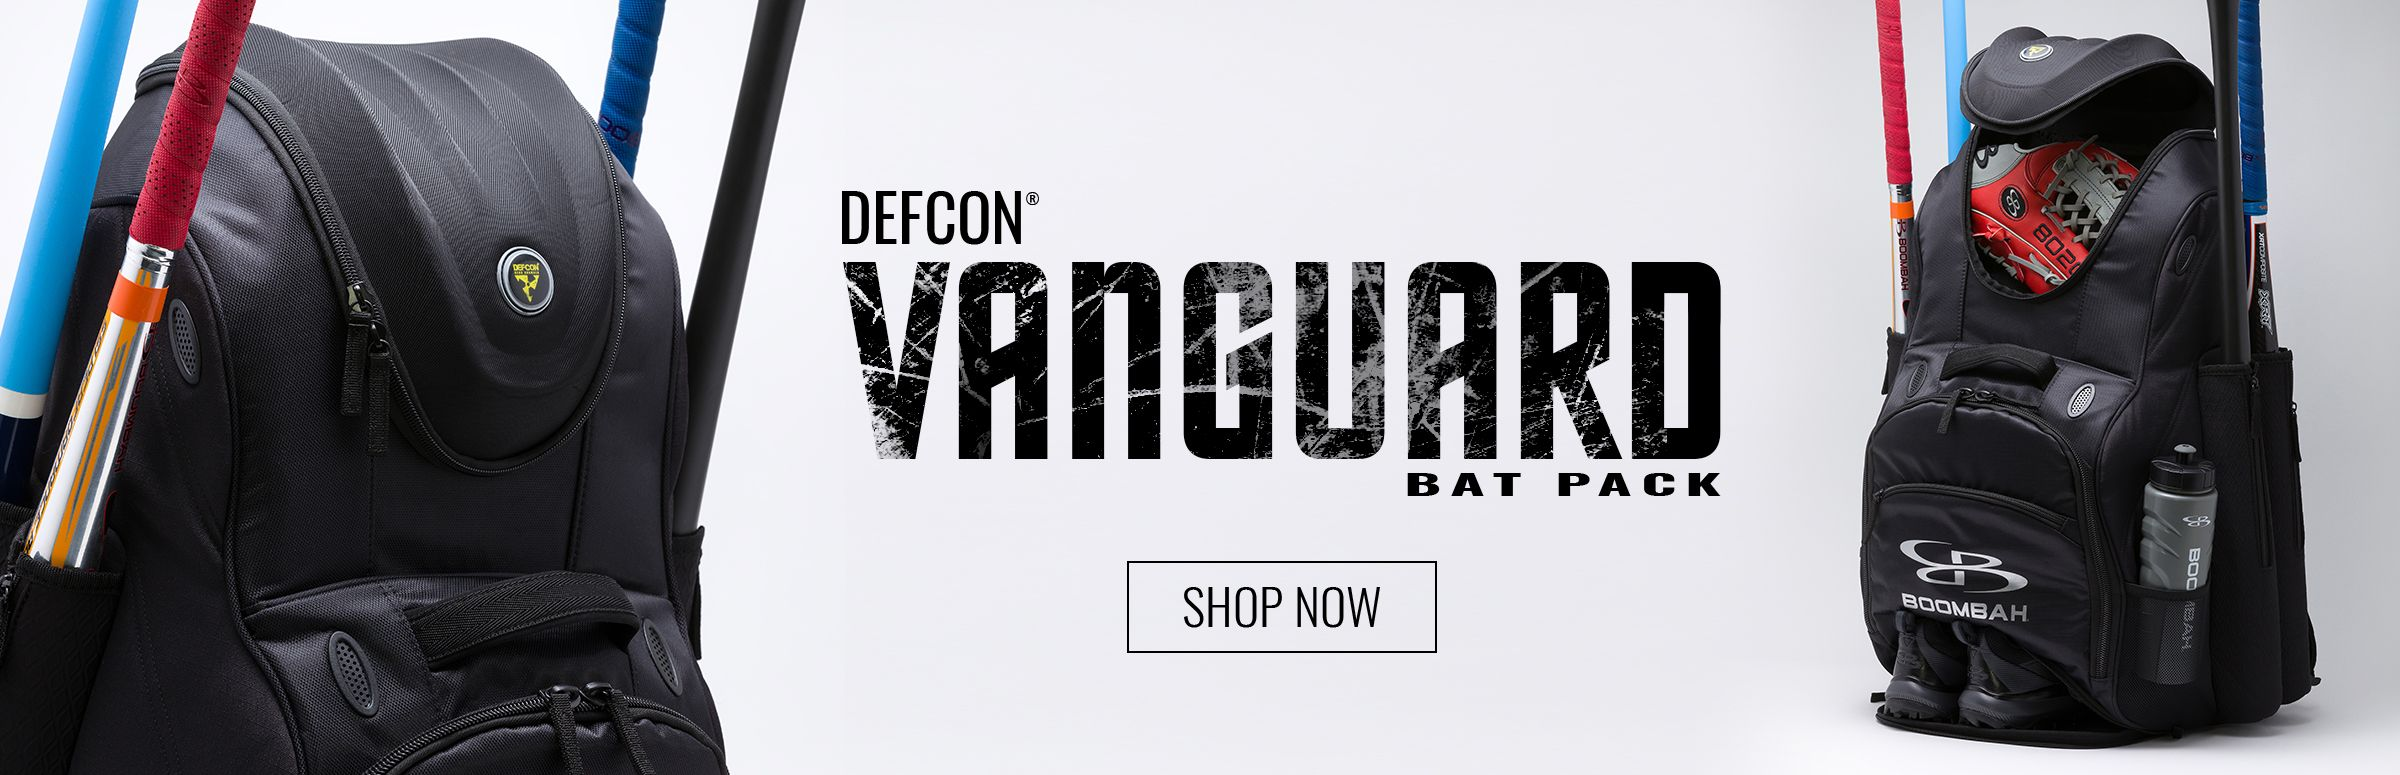 Boombah DEFCON® Vanguard Bat Pack